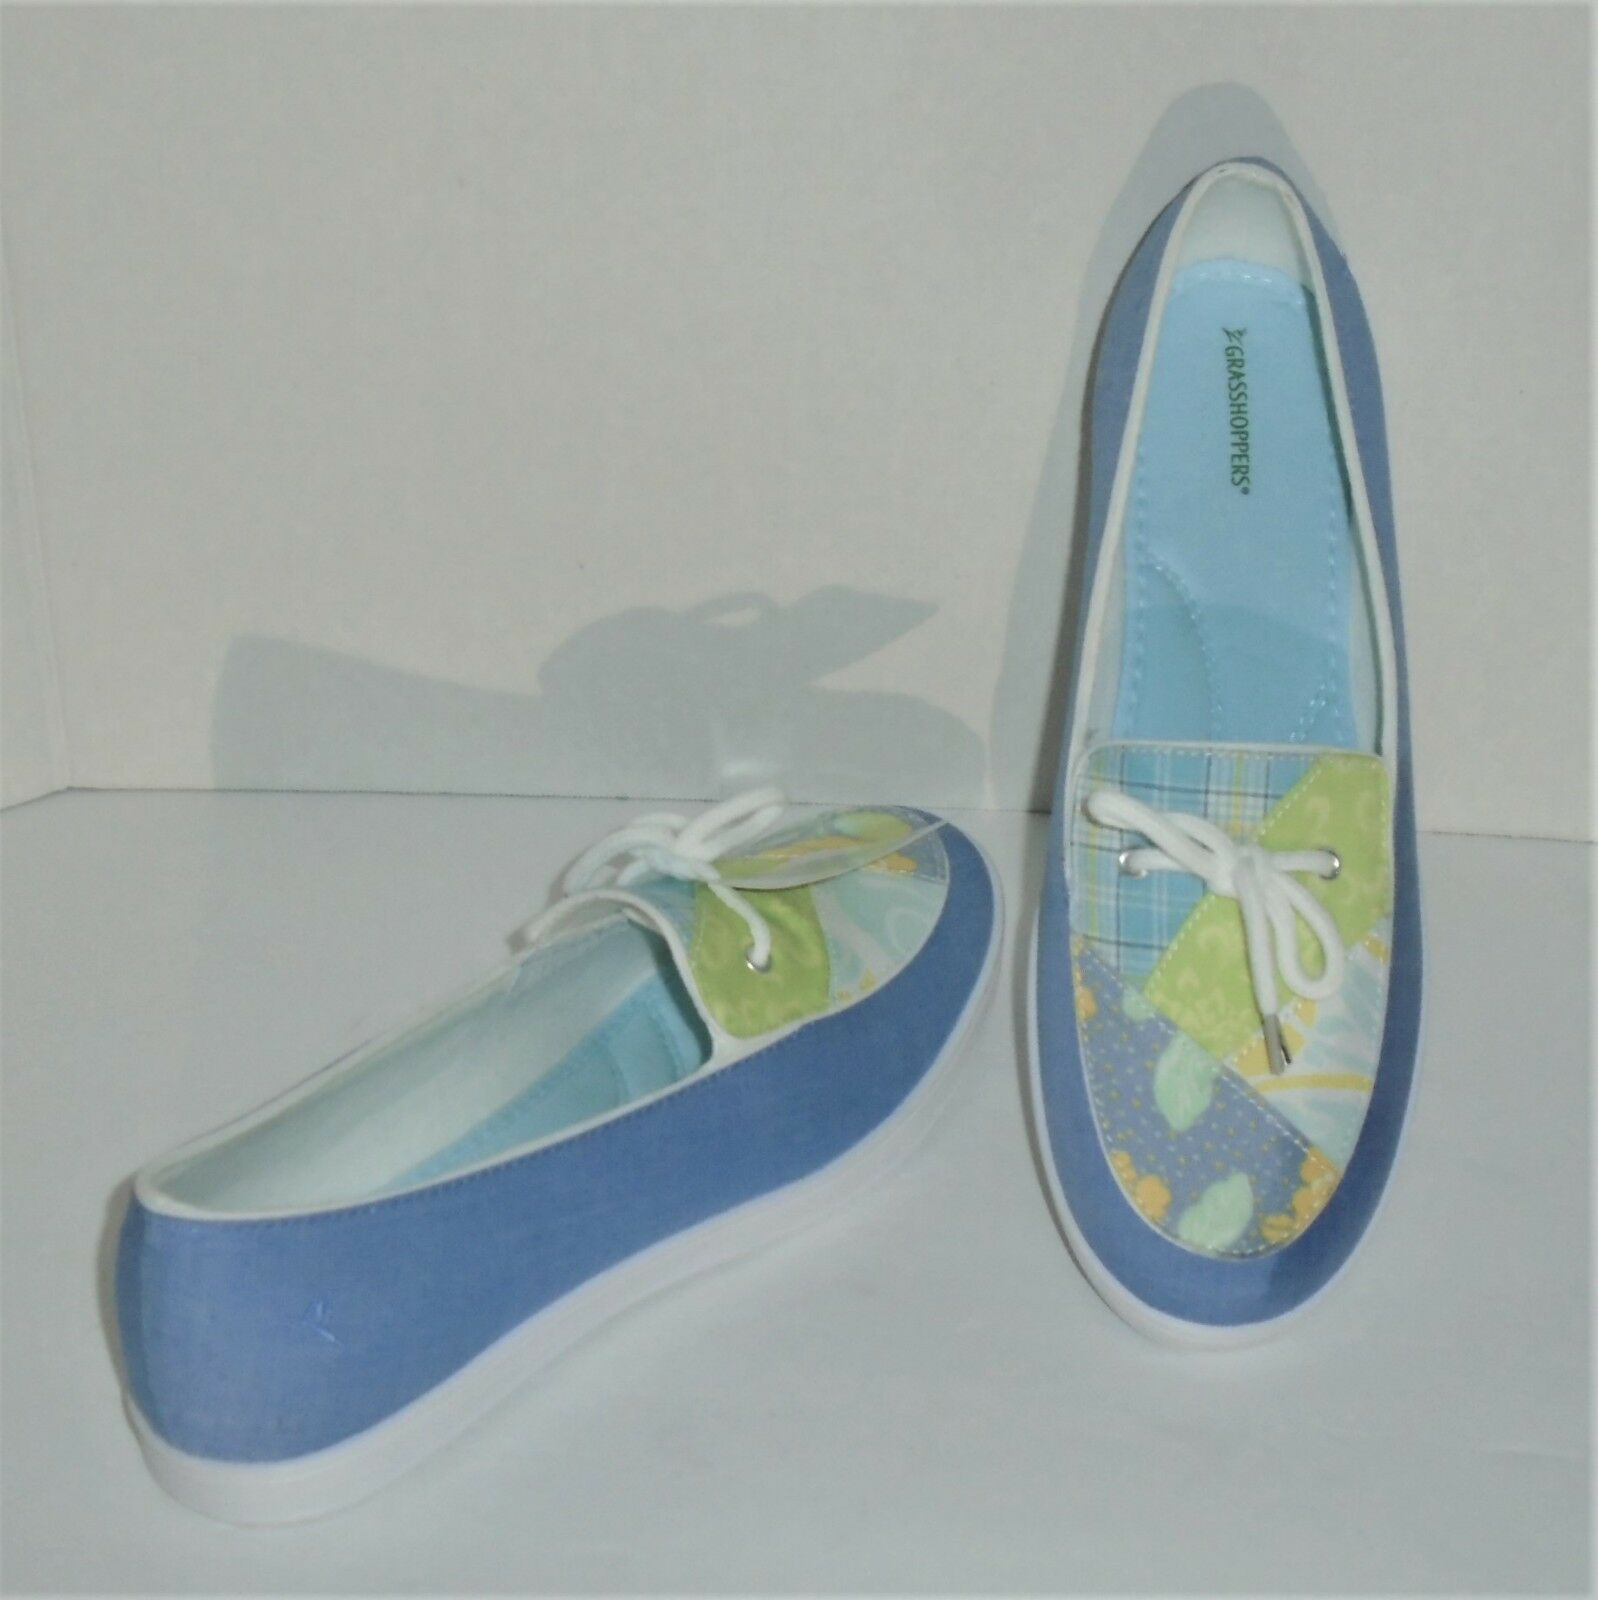 GRASSHOPPERS PURE FIT COMFORT SLIP ON SHOES - blueE & FLORAL - SIZE 9½ – NWT